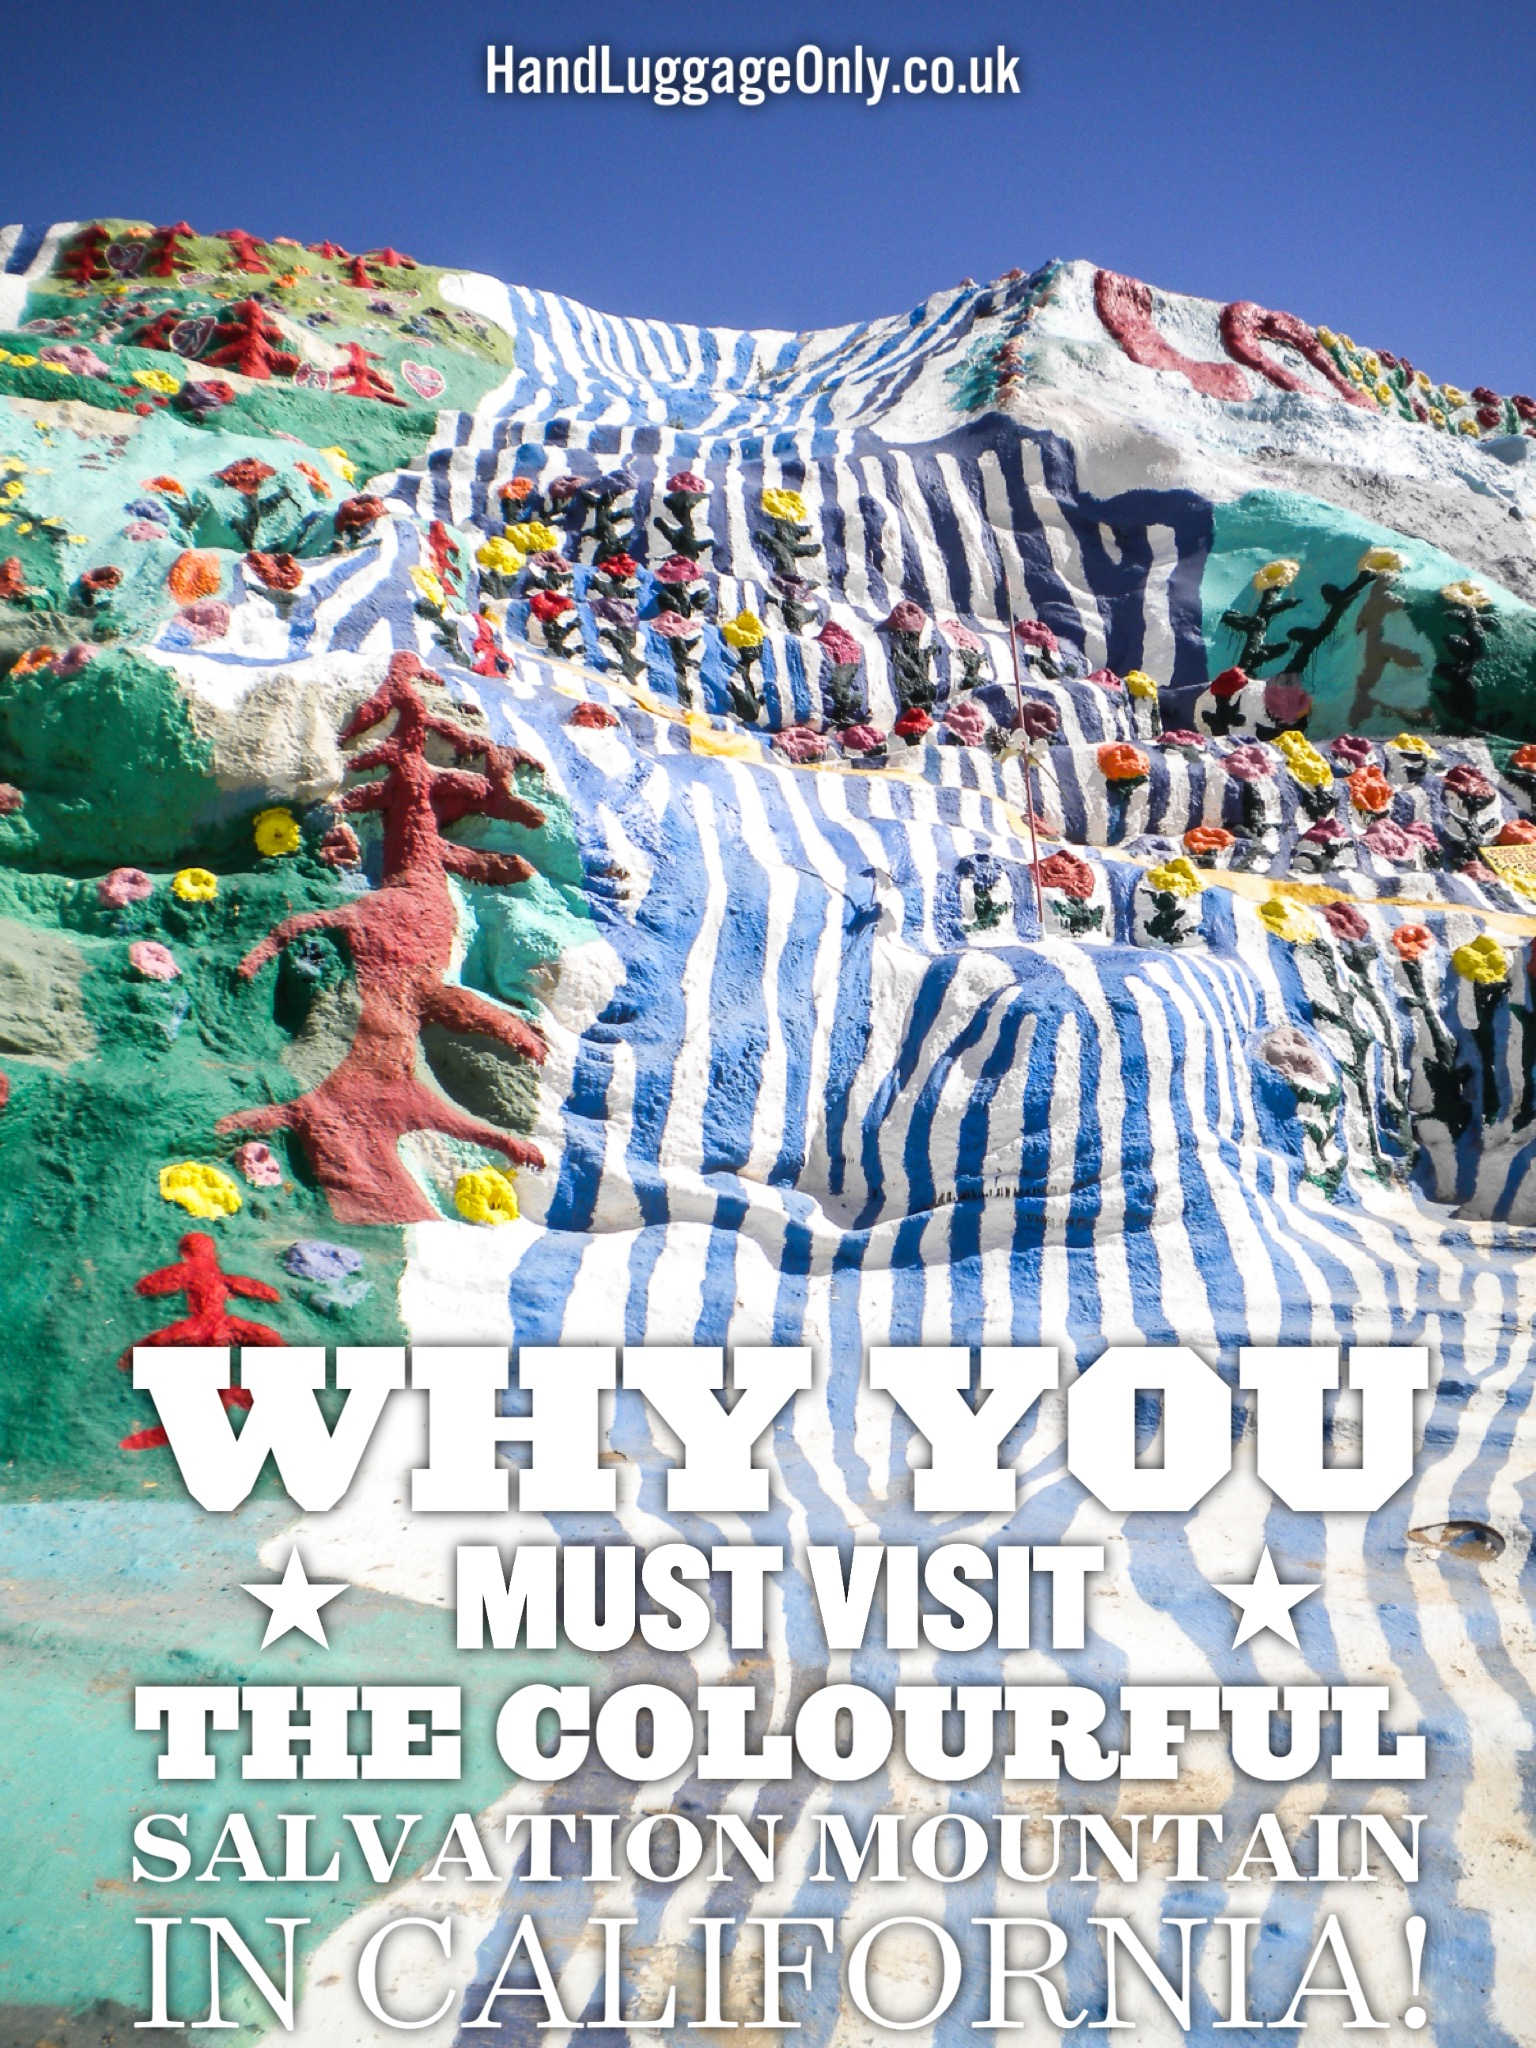 Have You Ever Heard Of Salvation Mountain in California? (1)